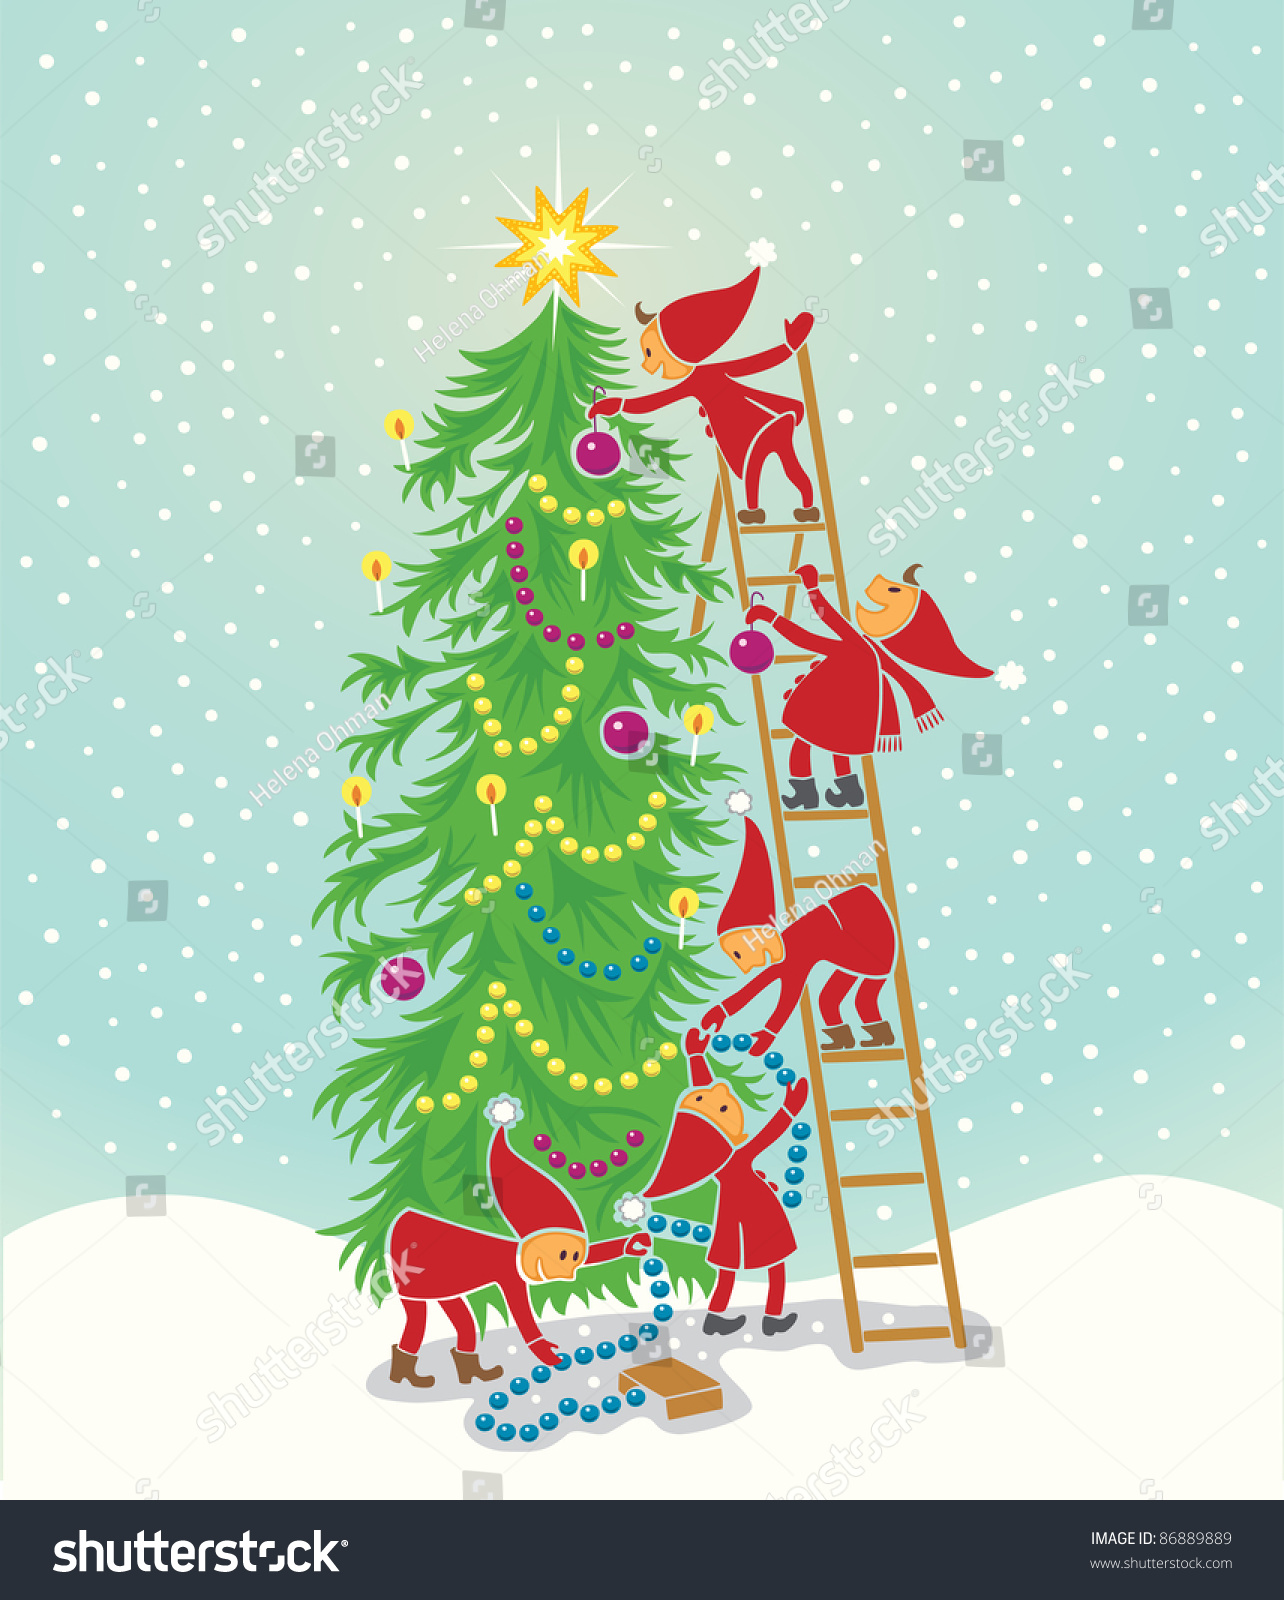 5 Cute Elfs Decorating The Christmas Tree Stock Vector